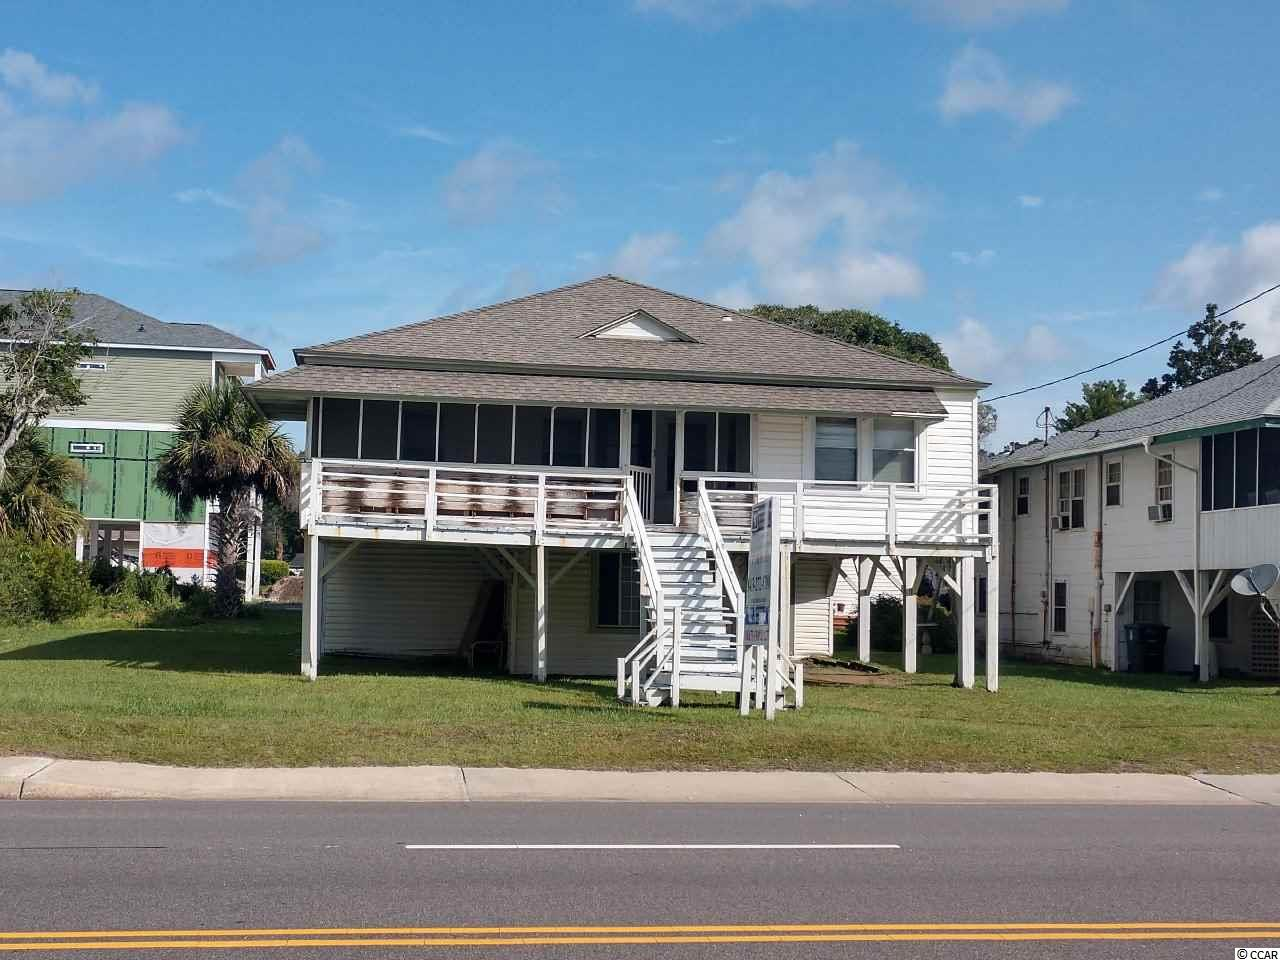 This is  second row property.  House need a lot of work.  It is a charming old beach house, built in 40's and has been in one family the entire time. It has pine paneled walls and pine floors throughout.  Located on a lot and a half with 75' of Ocean Blvd. frontage and 108' deep.  Ideal re-development site for a duplex.  Great location, close to Main Street and directly across the street from the Atlantic ocean.  Square footage is approximate and not guaranteed.  Buyer is responsible for verification.